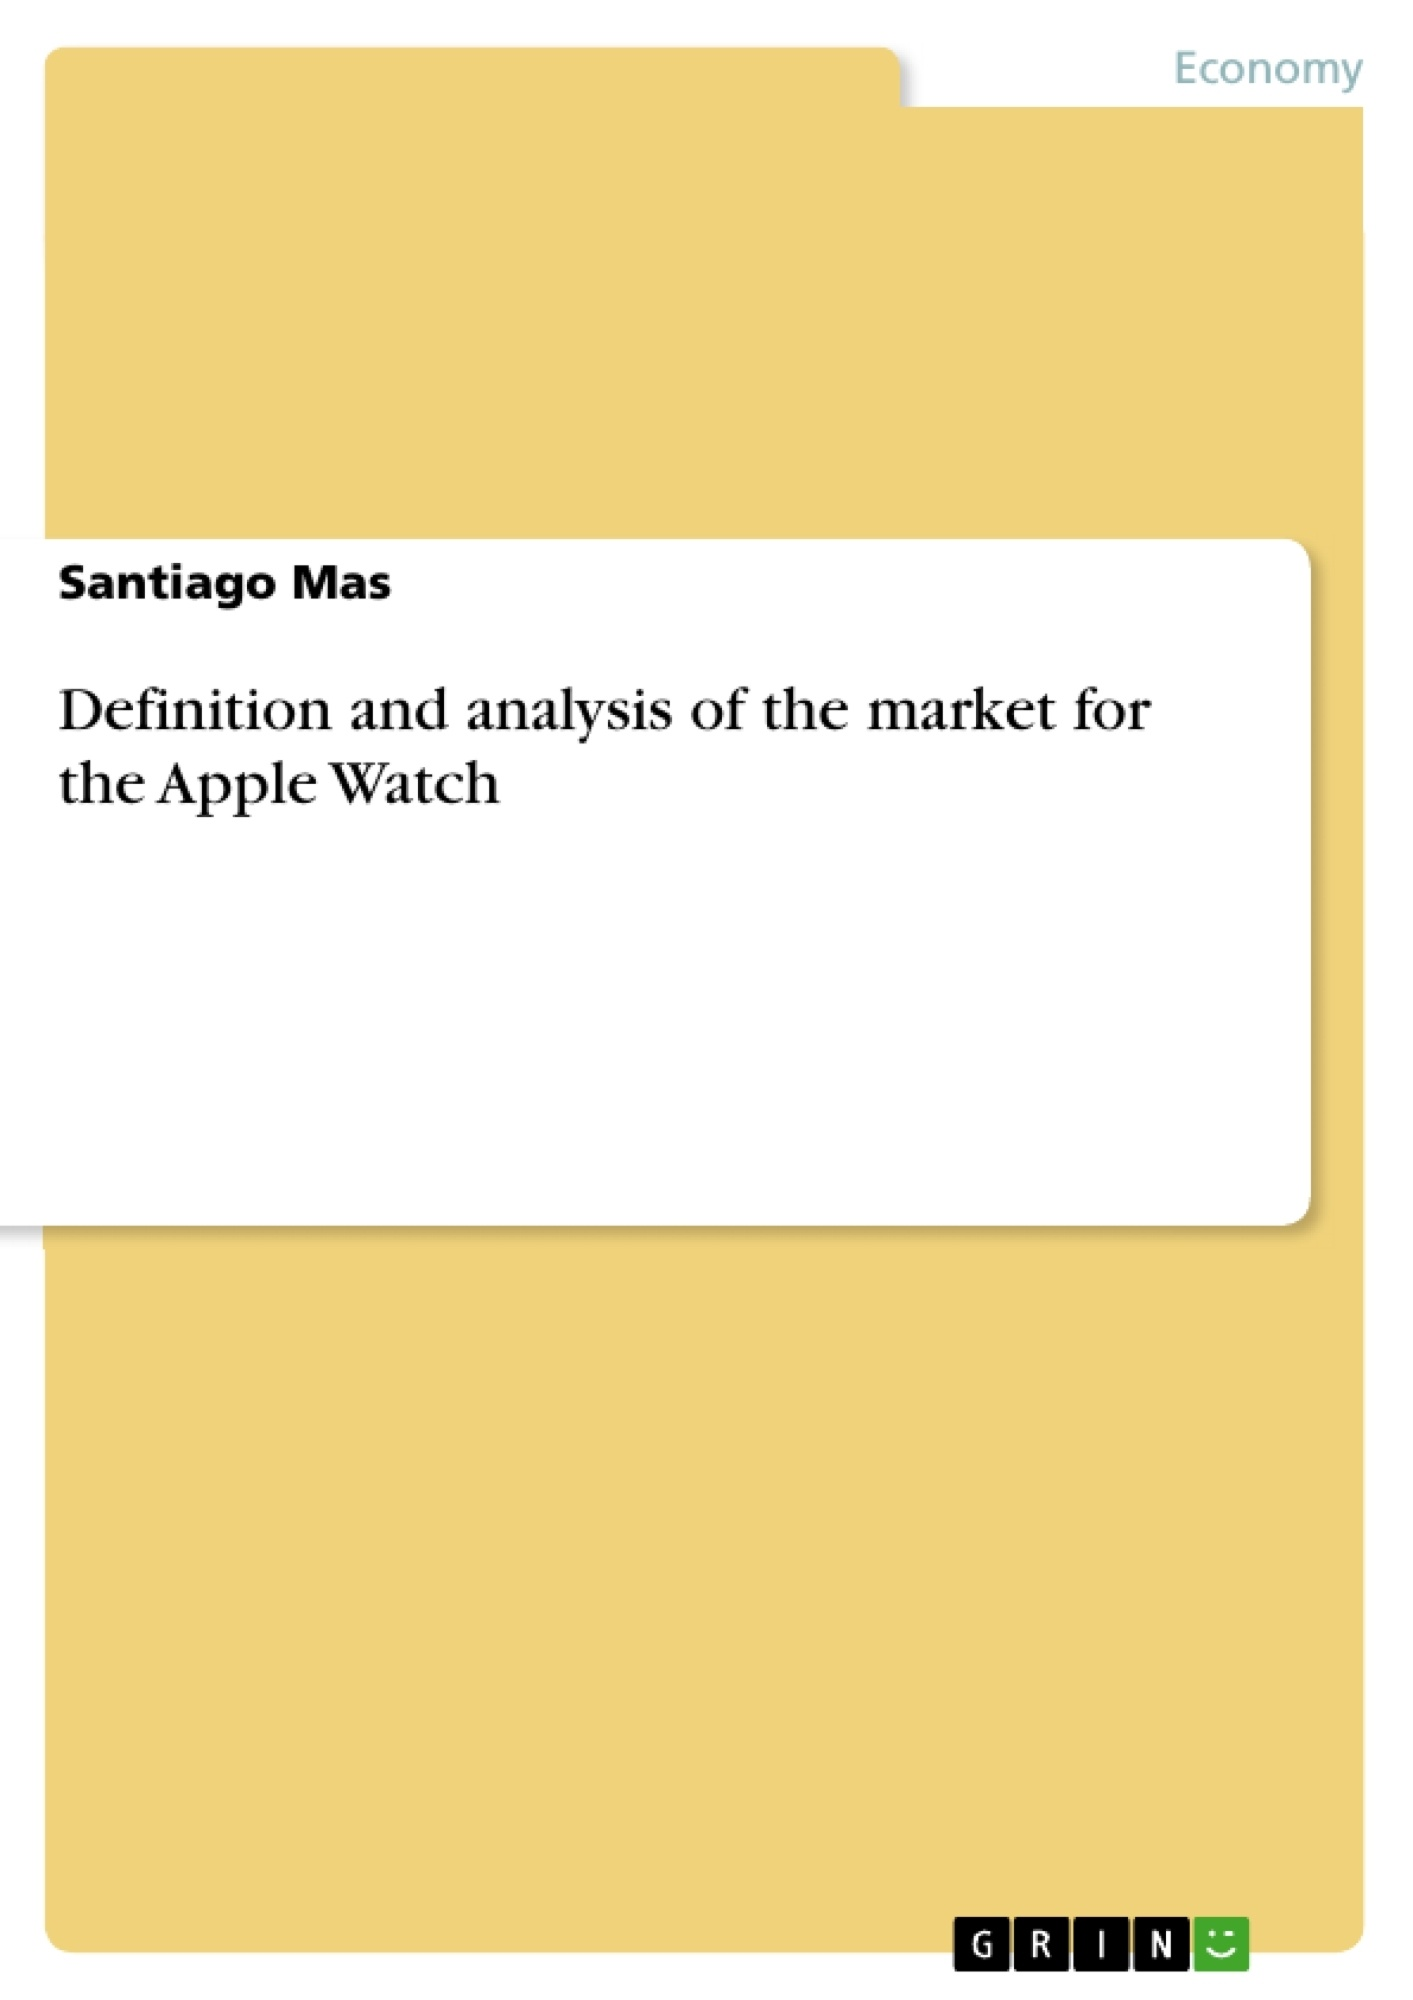 Title: Definition and analysis of the market for the Apple Watch